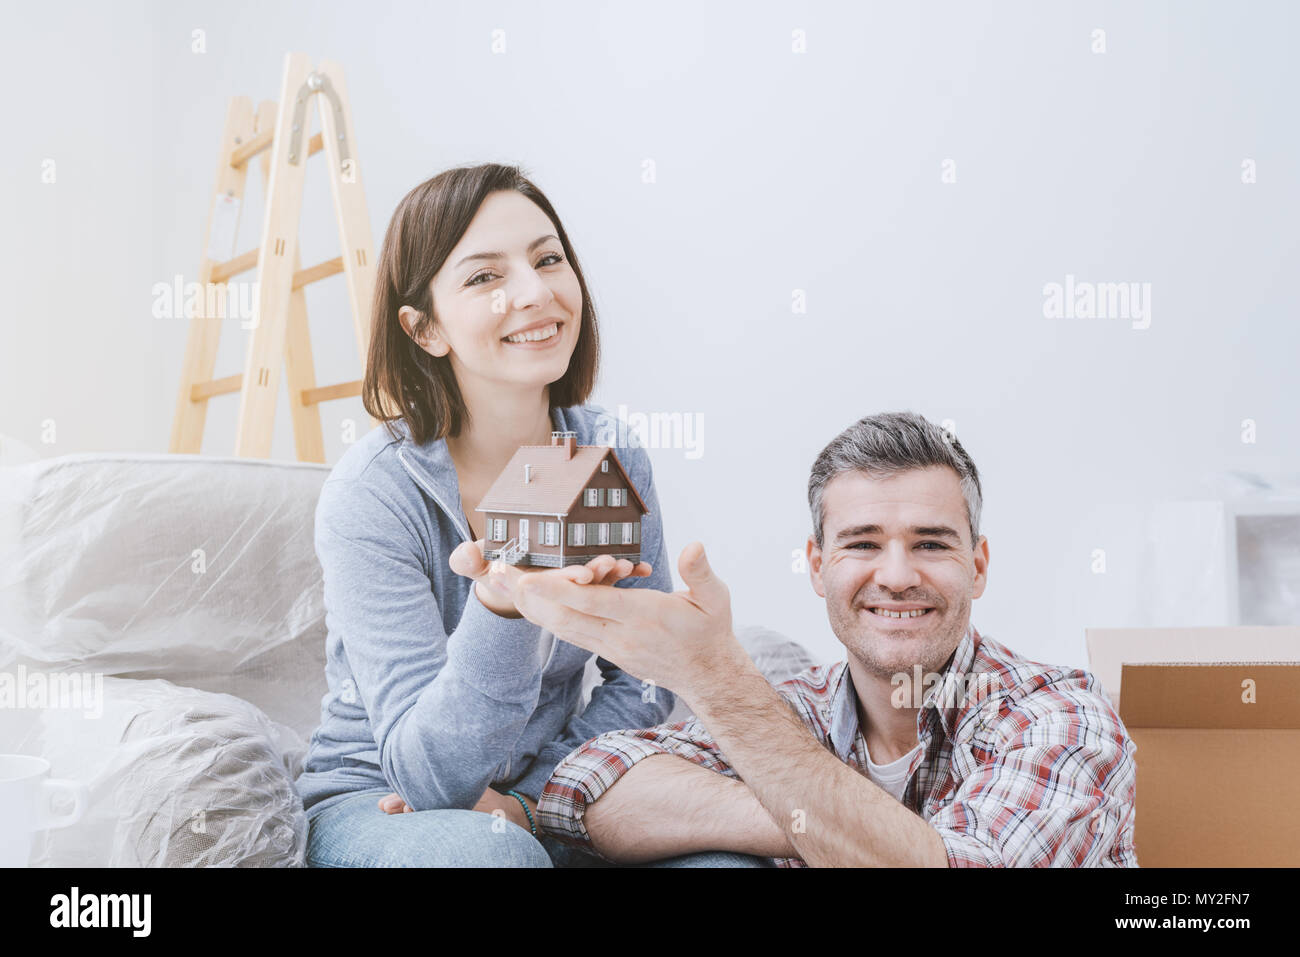 Happy smiling couple holding a model house, they are building their home together, real estate and construction concept - Stock Image